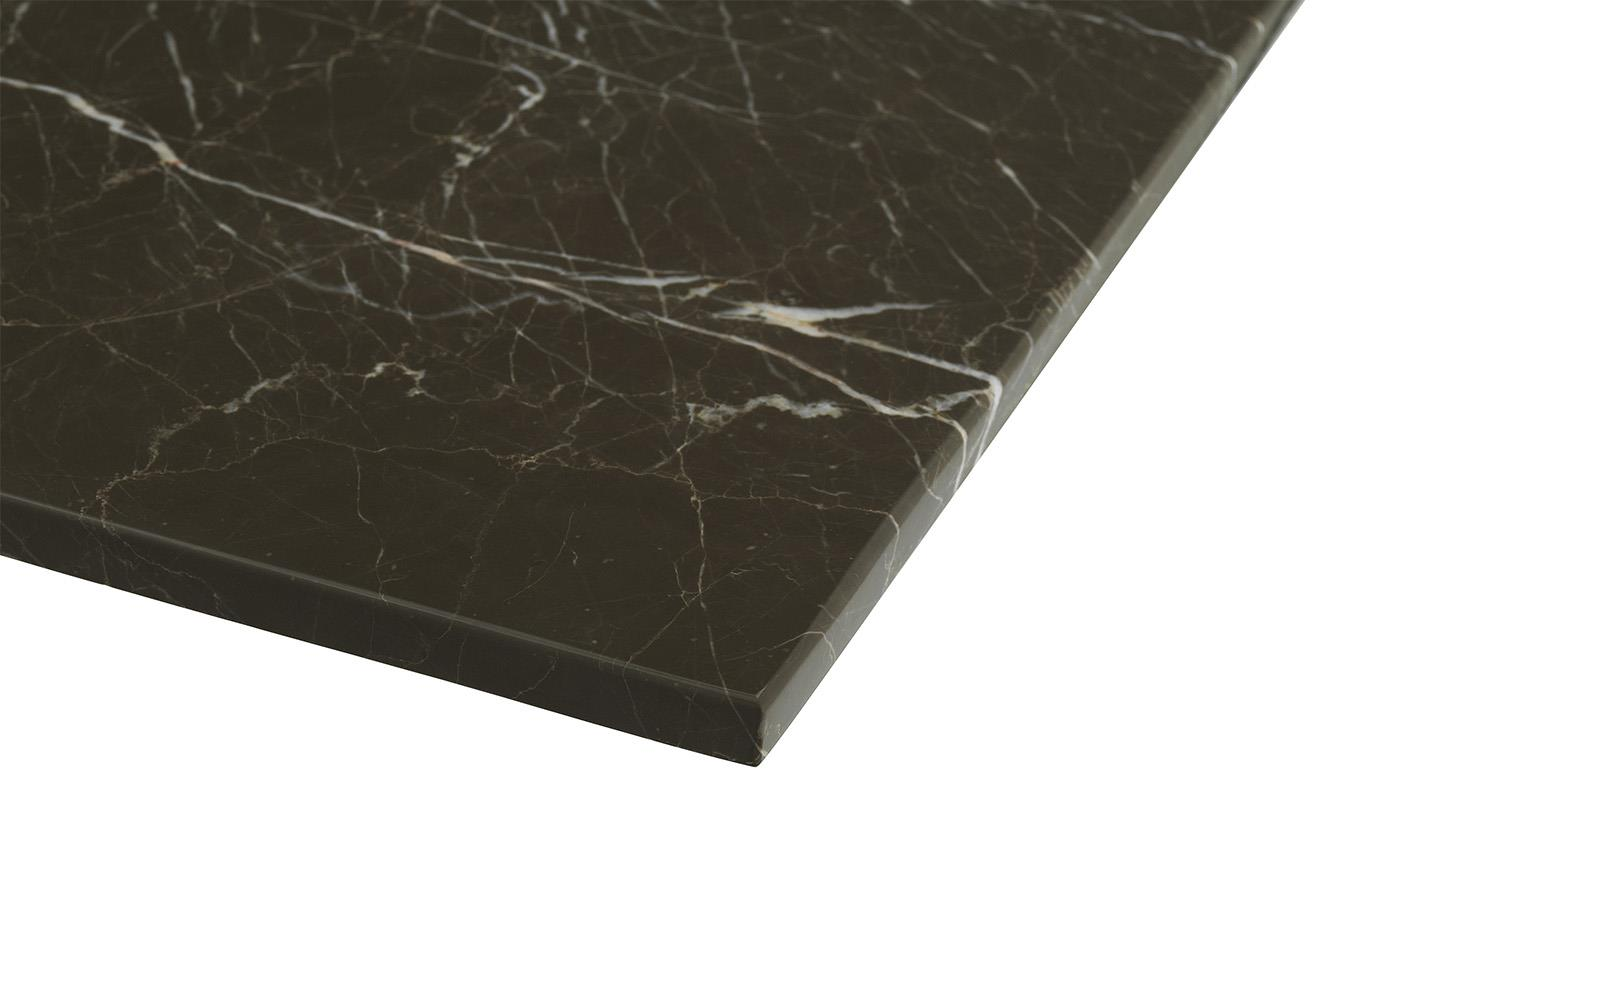 Form Caf Table Marble 70x70xH65 cm2